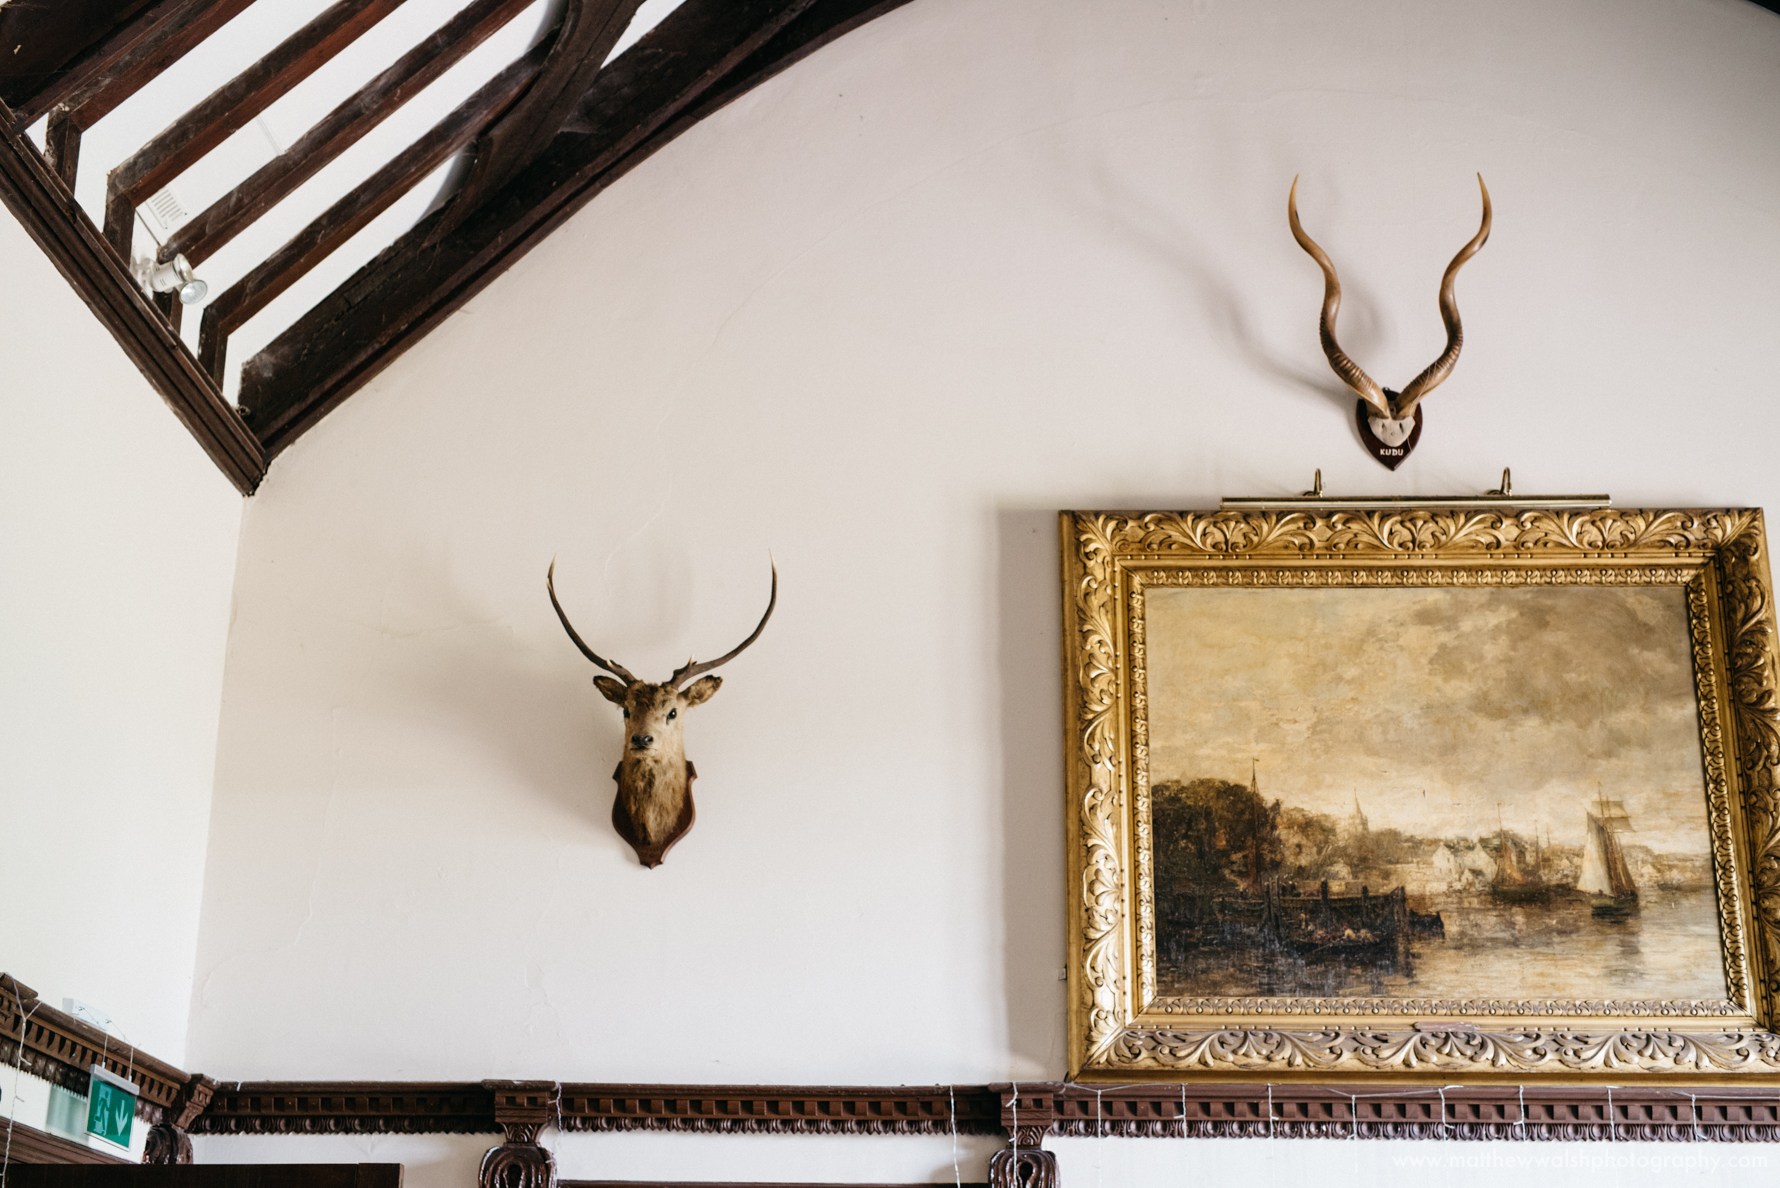 The walls of the grand hall adorned with hunting trophies